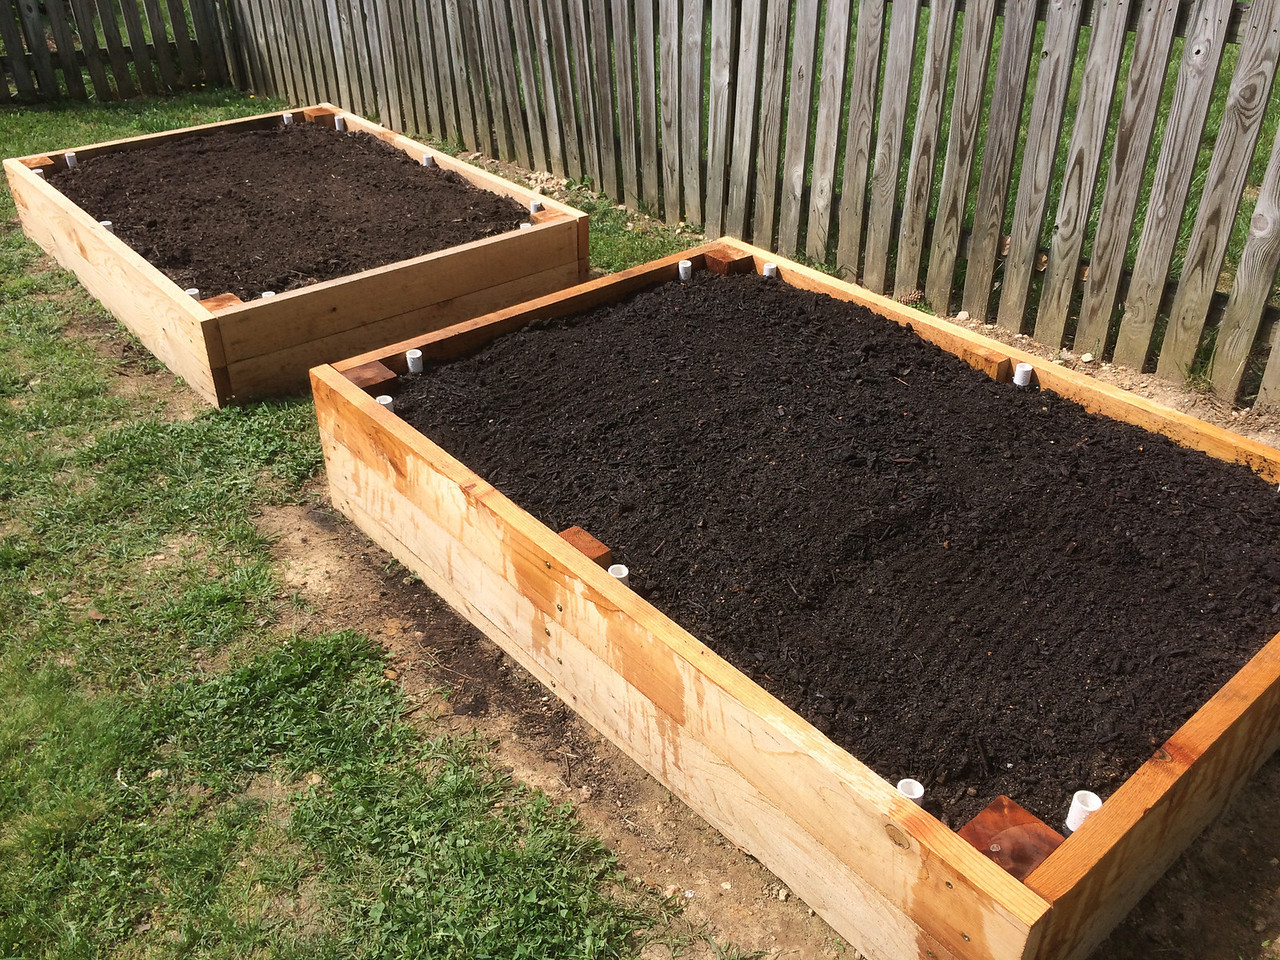 Finally, the beds are full of the new garden soil. It took almost all of those 1.5 cubic yards to get these topped off. I'm assuming they will settle a little bit over the next few weeks as they get rained on.<br /> <br /> Next step is to plant. For now I'm going to take some ibuprofen and lay on the couch.